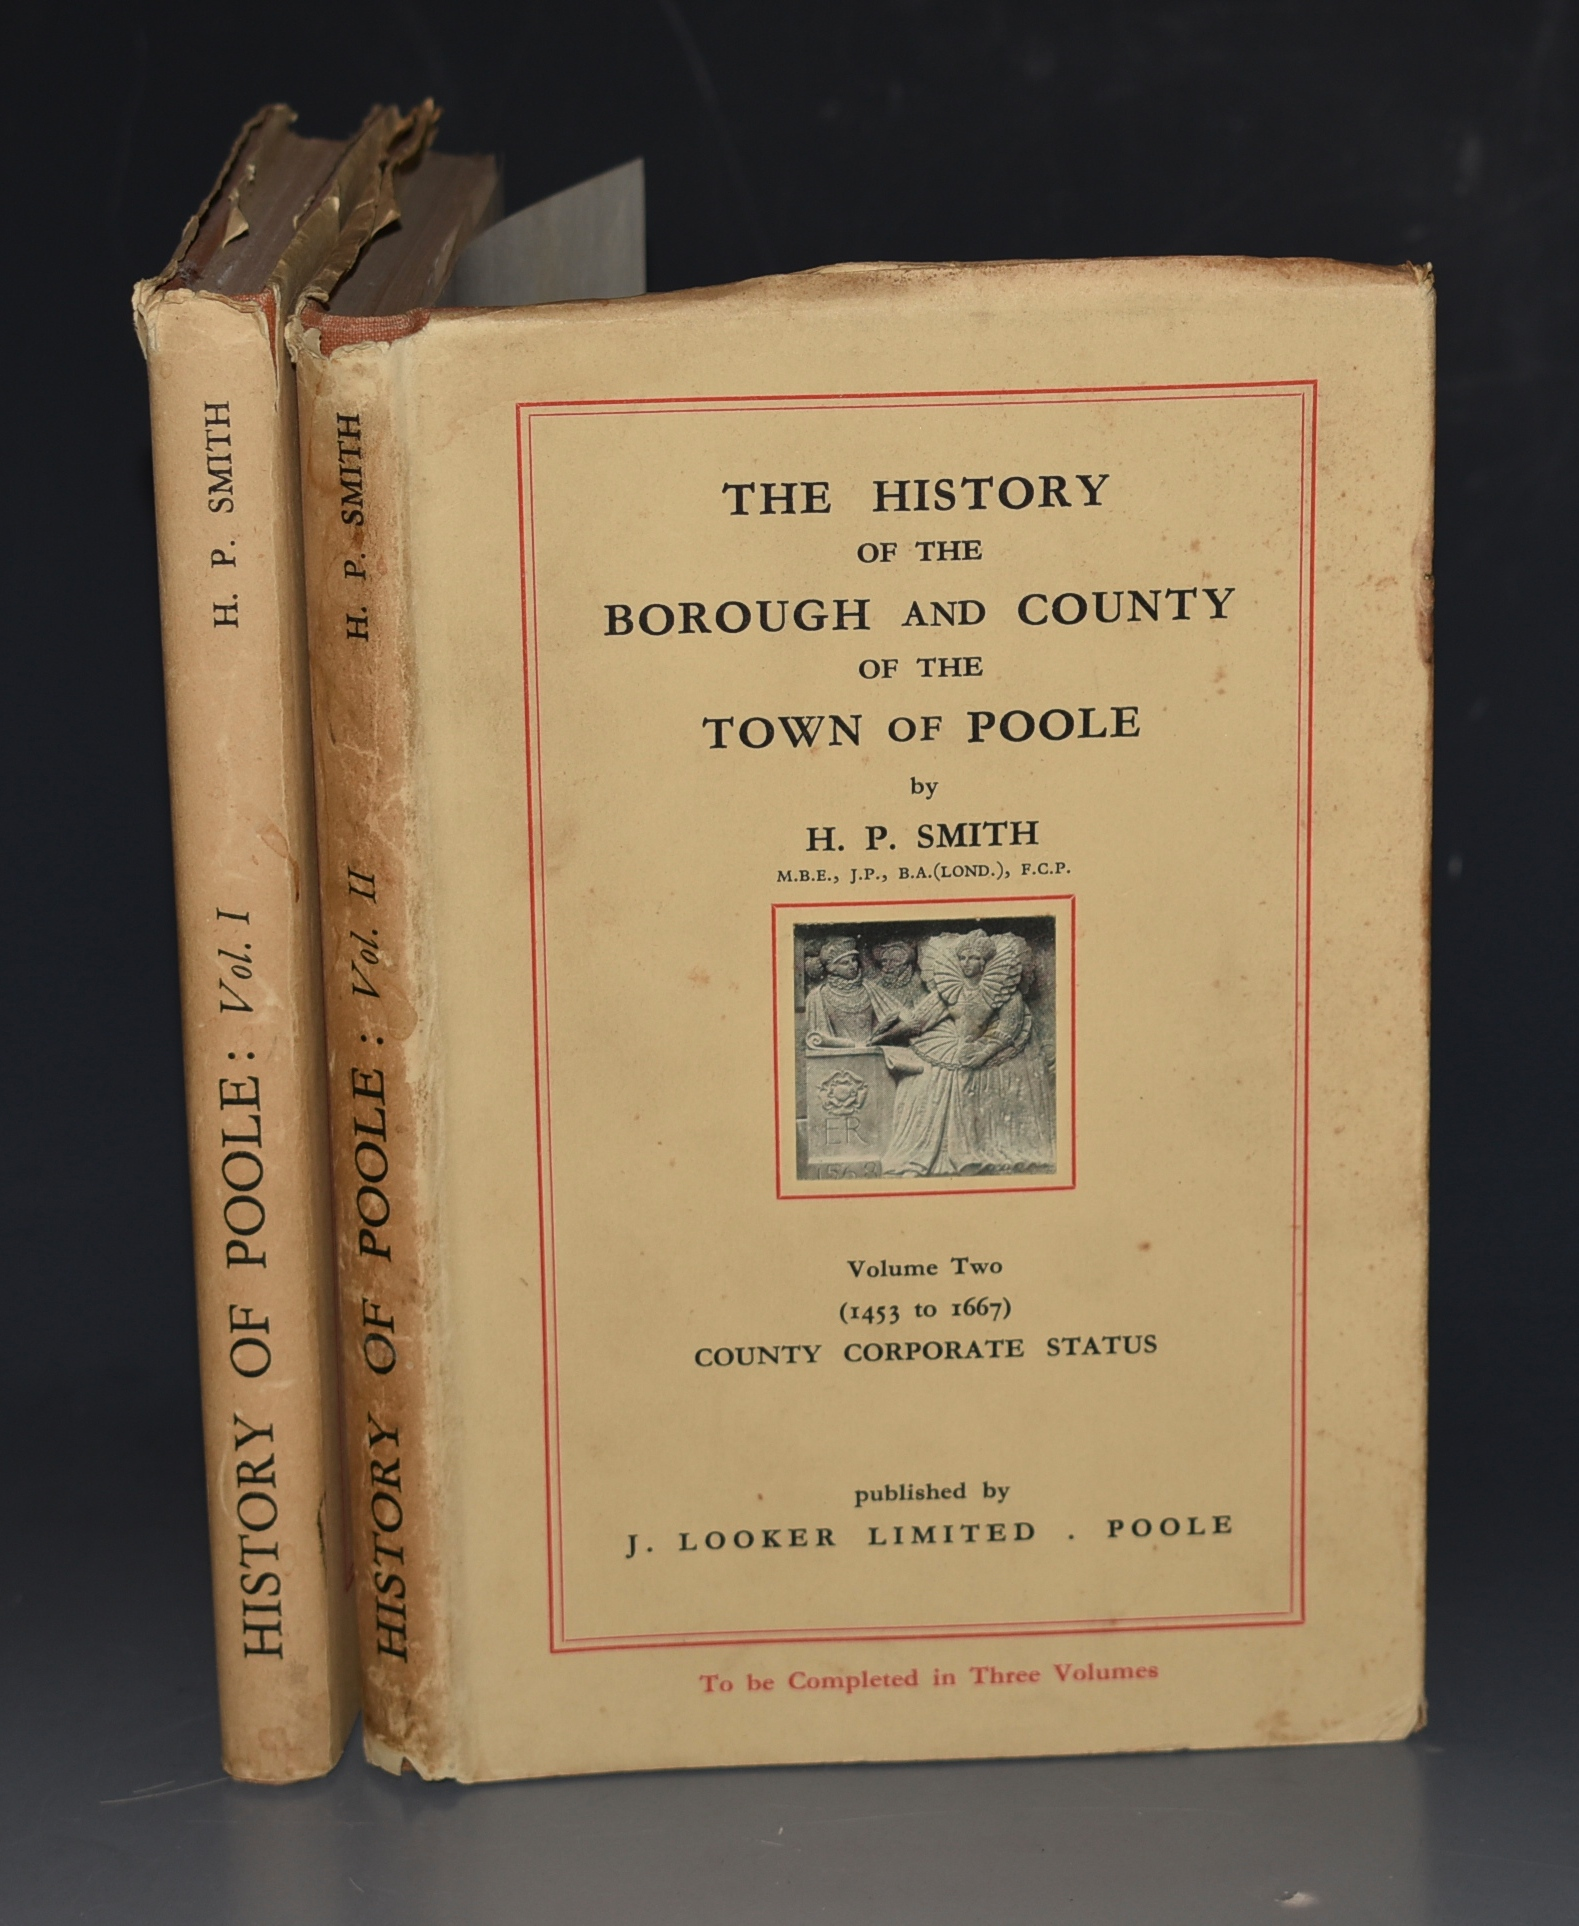 Image for The History Of The Borough And County Of The Town Of Poole. Volumes One - Origins and Early Development. Vol Two - County Corporate Status.